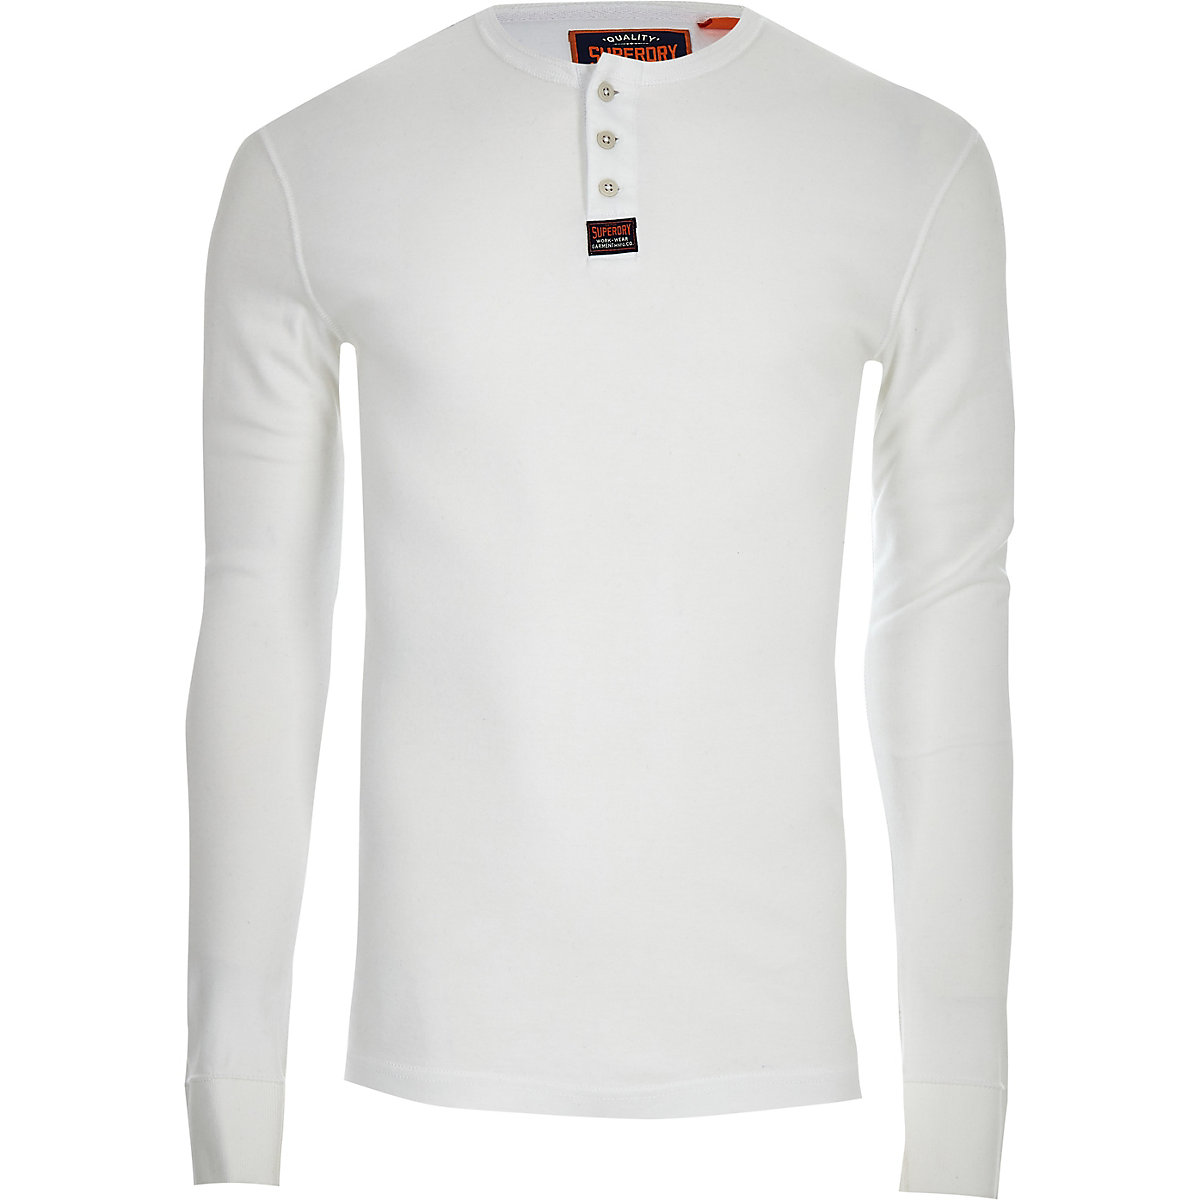 Superdry white button long sleeve T-shirt